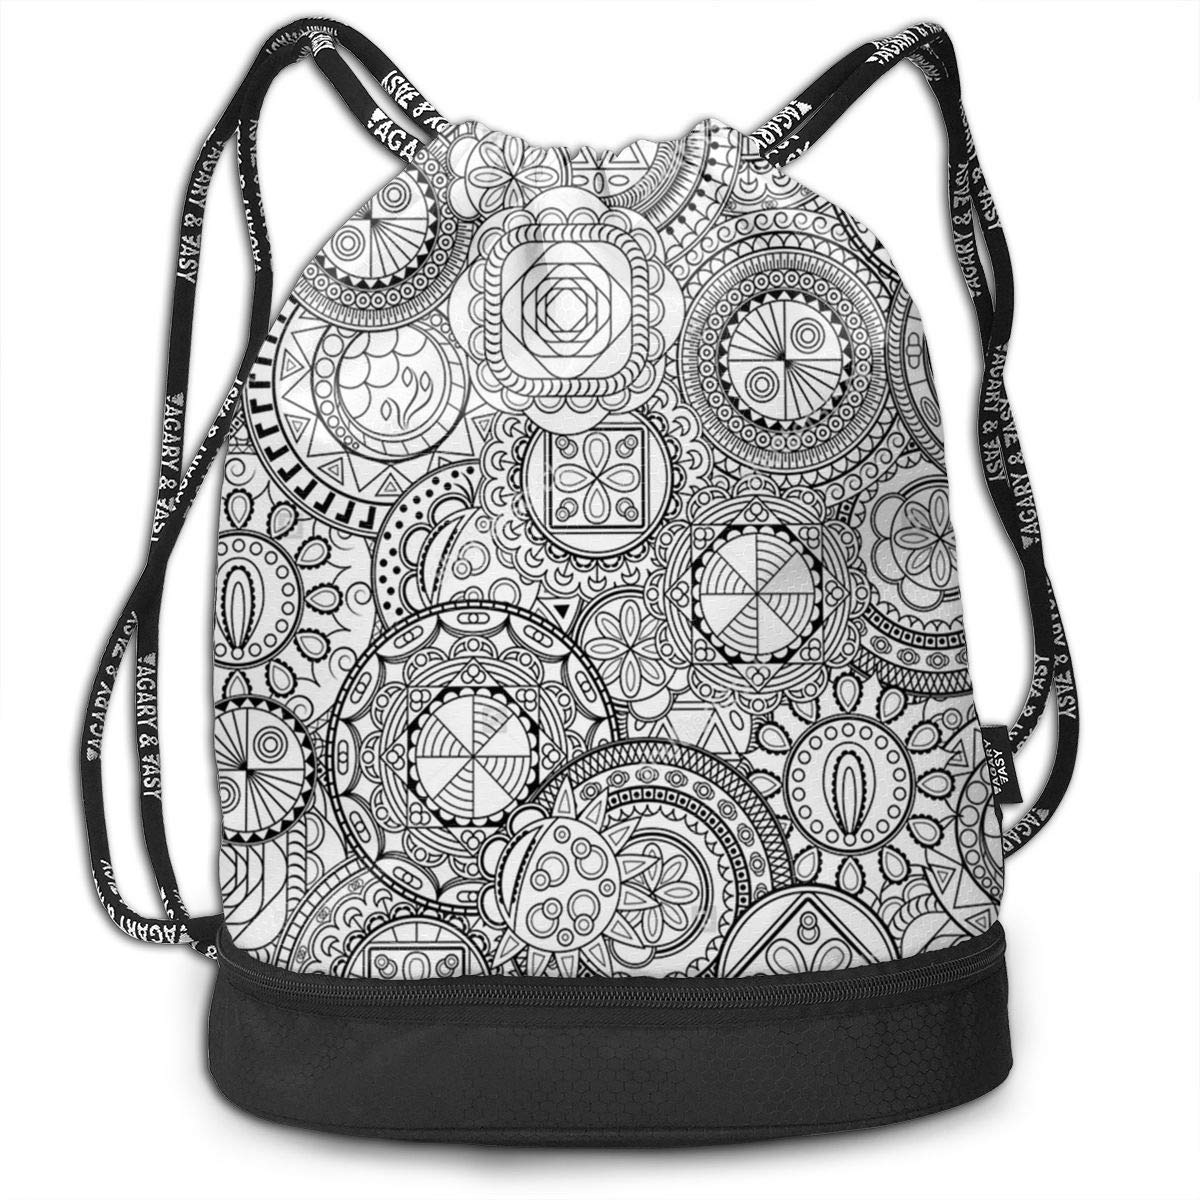 HUOPR5Q Mandala-Design Drawstring Backpack Sport Gym Sack Shoulder Bulk Bag Dance Bag for School Travel